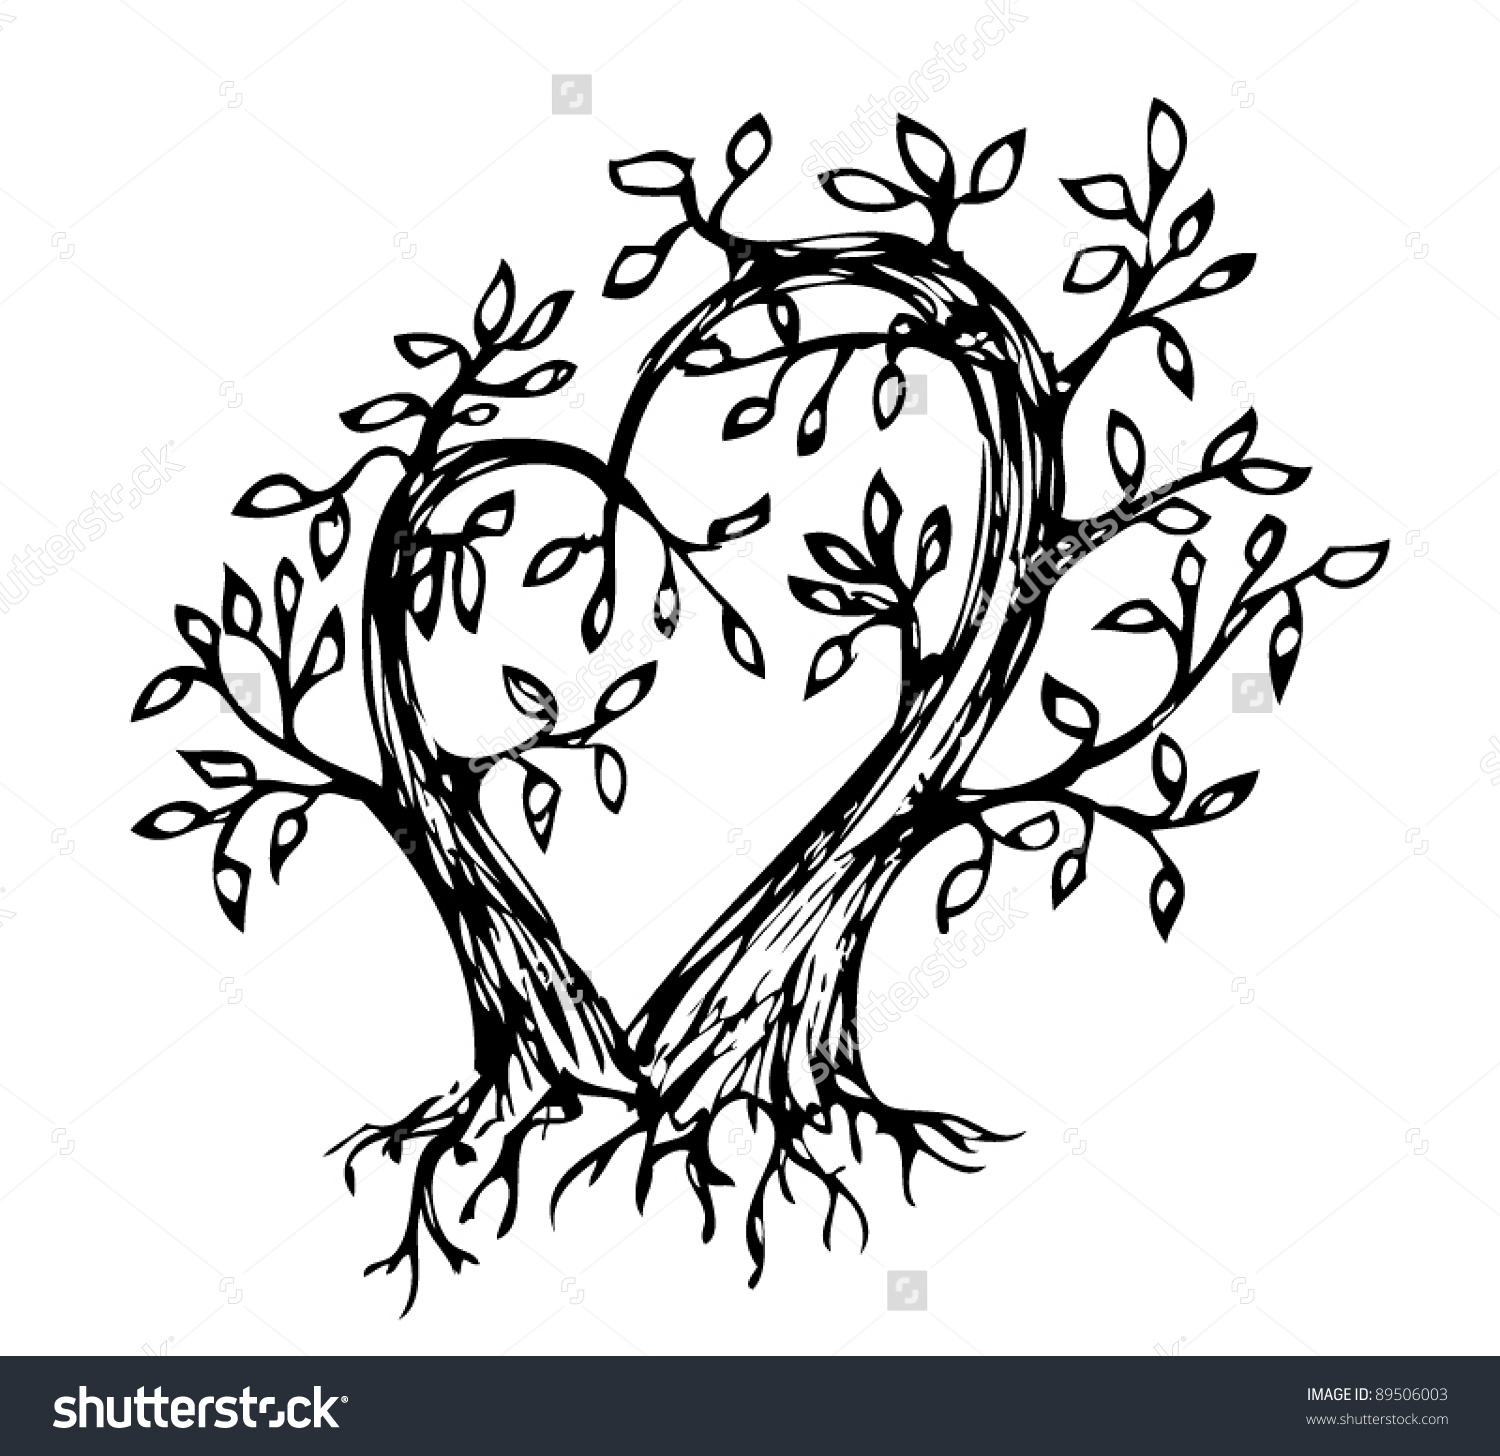 1500x1456 Intertwined Tree Clipart